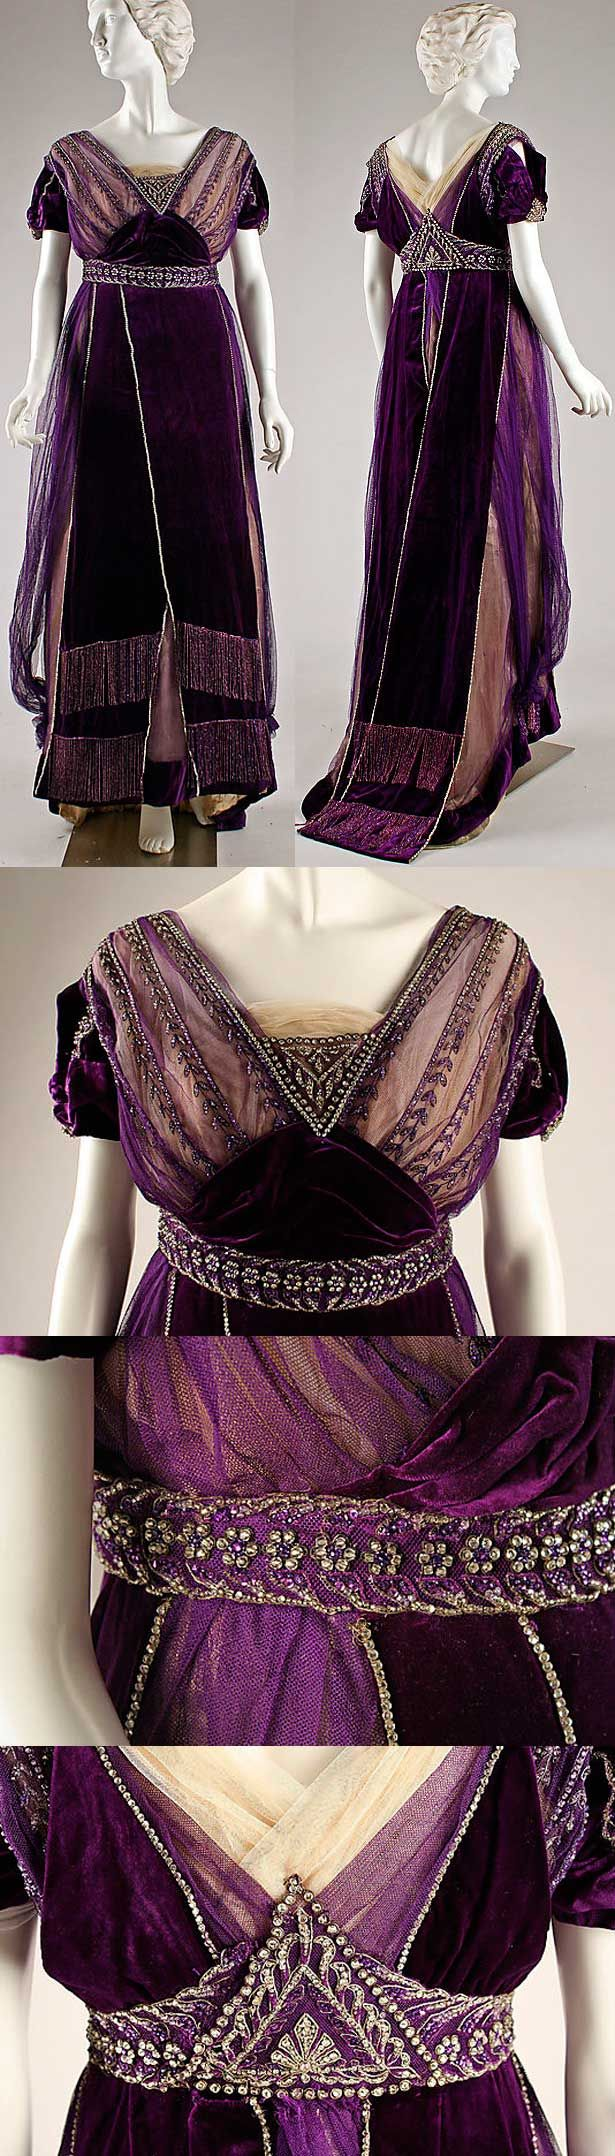 Evening dress, House of Worth, ca. 1910. Silk, cotton, metallic threads, glass.